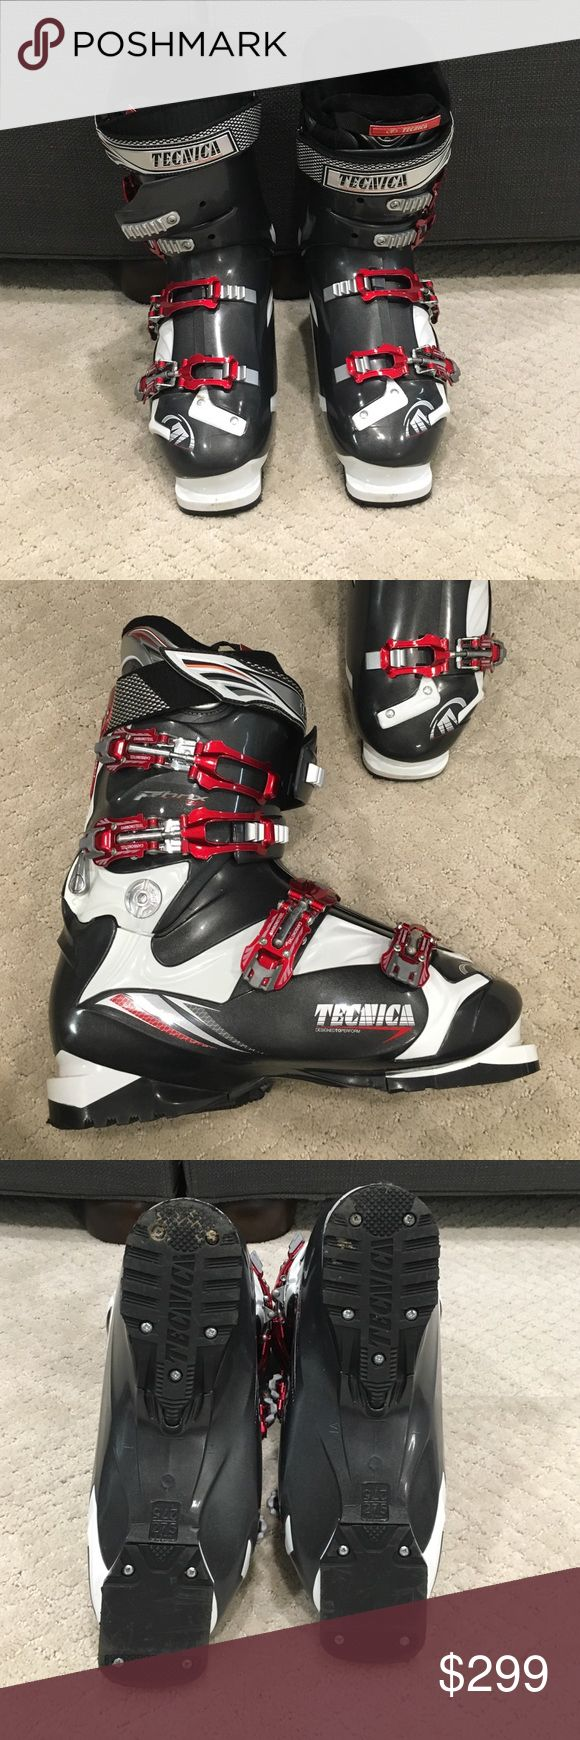 🍾BOGO 🌠⬇️$drop ❄️MENS Tecnica Ski boots ❄️20% Fall bundle promo! MENS Tecnina PHNX 80 style ski boots. Heel says 27.5. Worn once. Perfect condition. Grey white red. Inside black. Side of boot says 315 mm / 275. For size 10 MENS. Pet / smoke free home. Tecnica Shoes Rain & Snow Boots